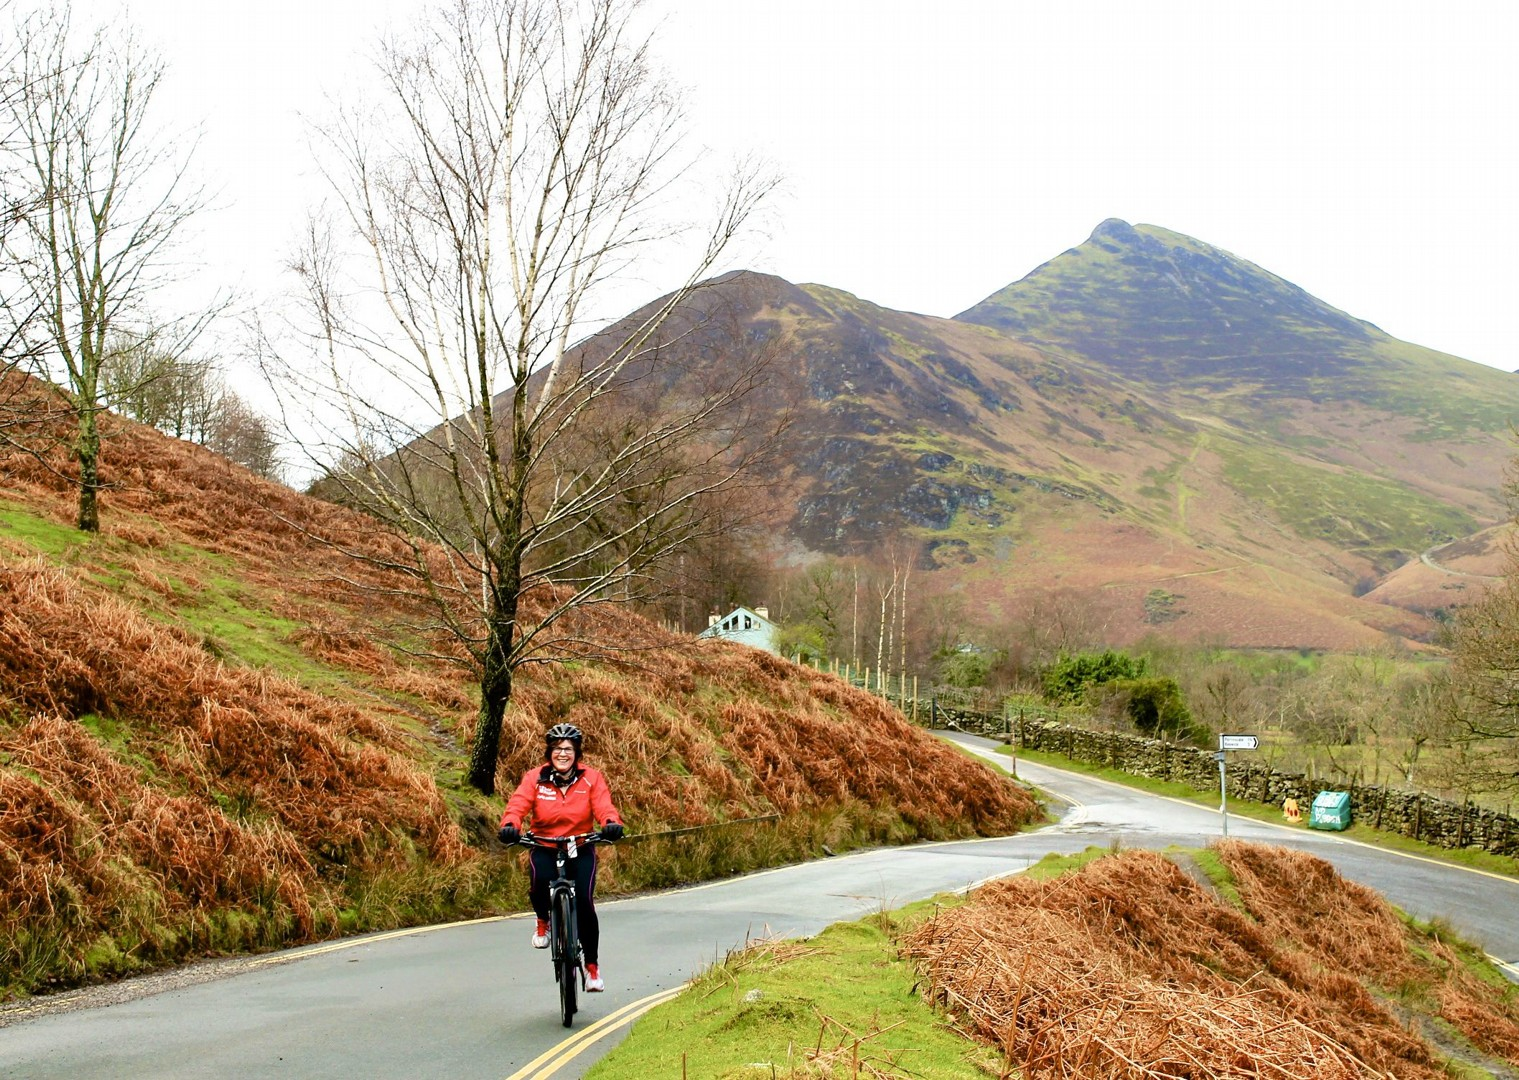 Lake District-Derwent-Water-Self-Guided-Leisure-Cycling-Holiday.jpg - UK - Lake District - Derwent Water - Self-Guided Leisure Cycling Holiday - Leisure Cycling